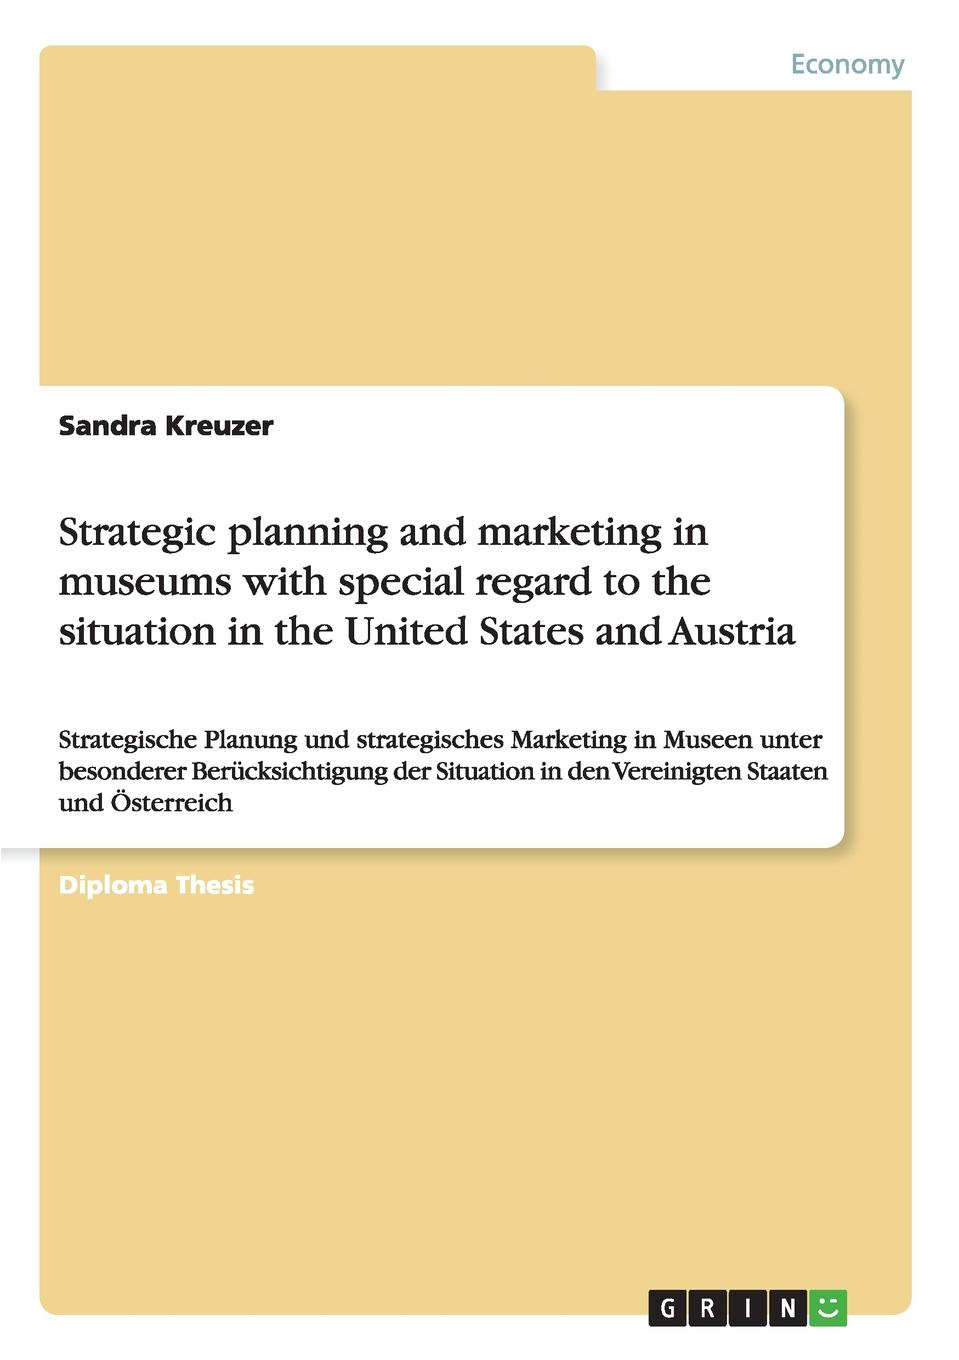 лучшая цена Sandra Kreuzer Strategic planning and marketing in museums with special regard to the situation in the United States and Austria